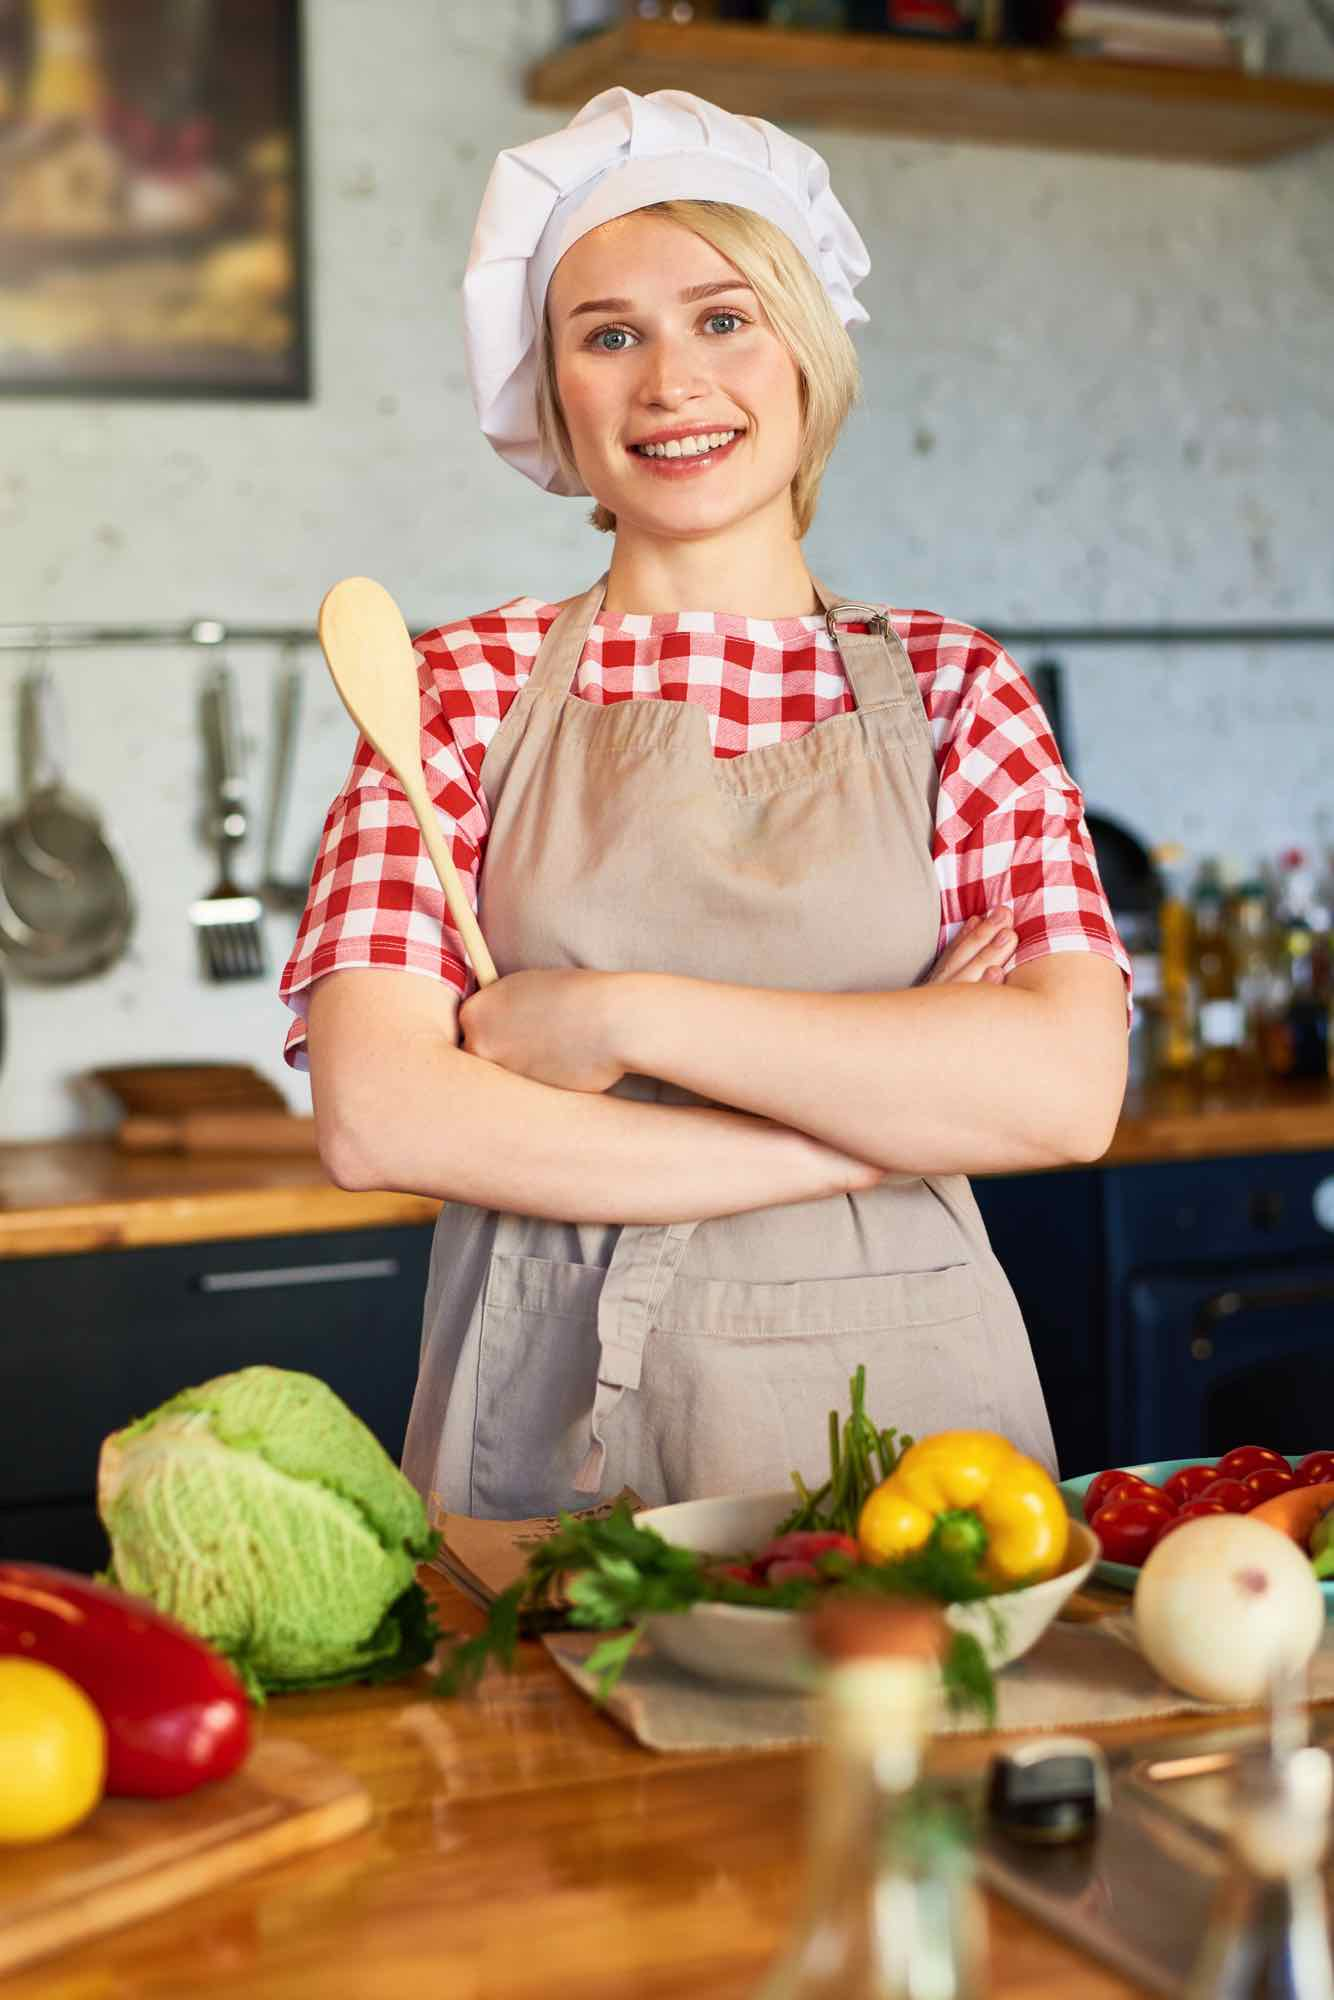 pretty-young-housewife-in-chefs-hat-4QA8D2T.jpg